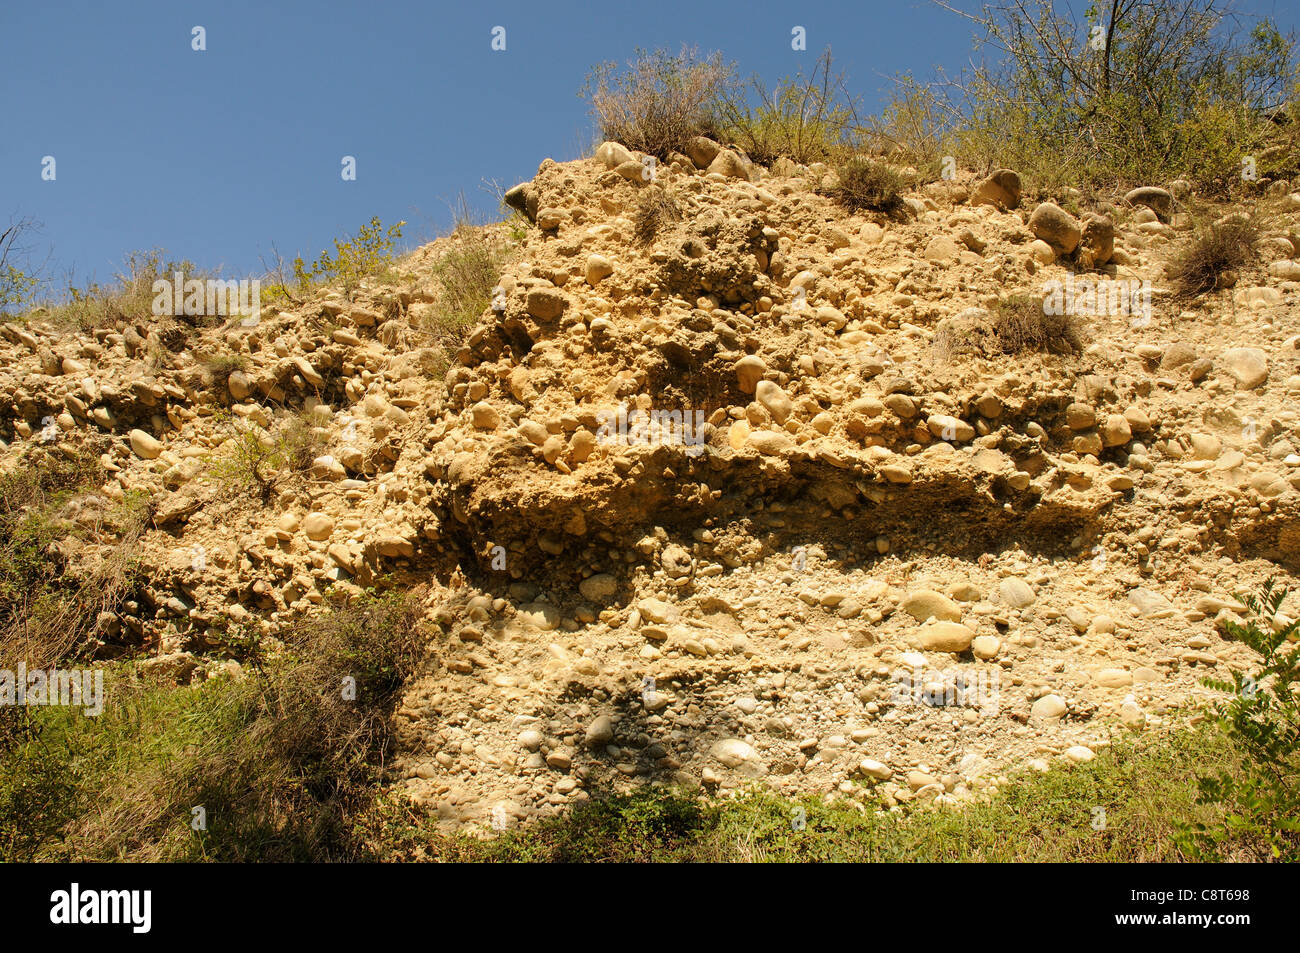 A layer of sedimentary deposit full of large stones - Stock Image